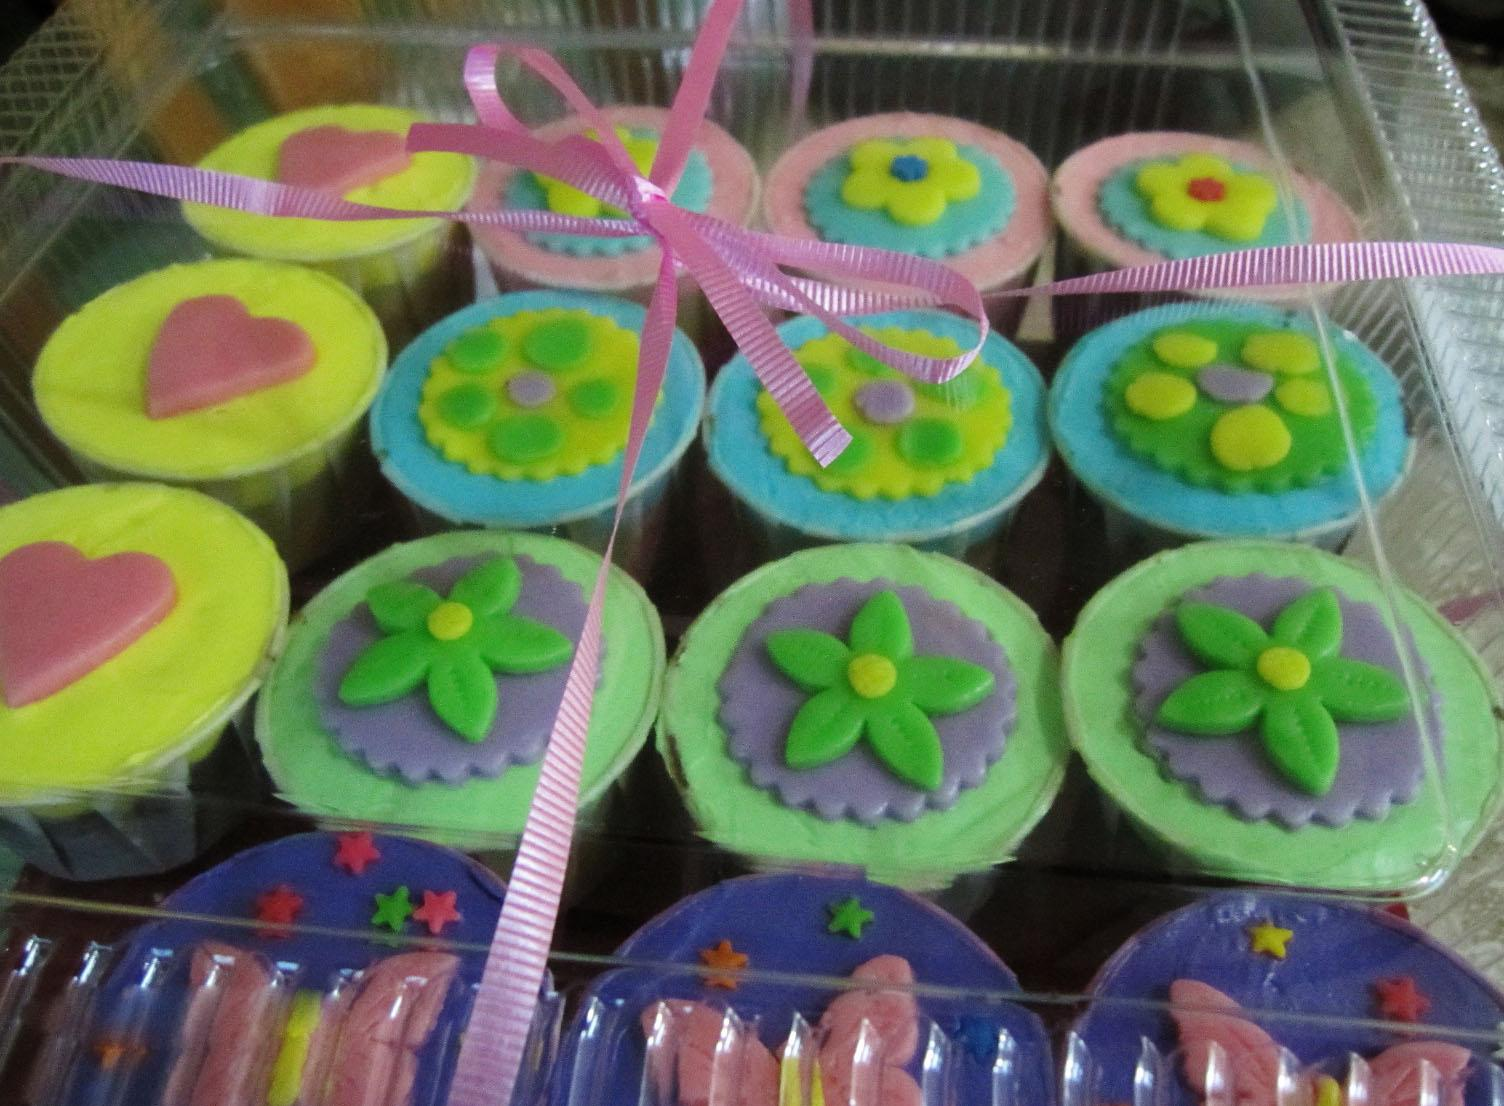 Here are some cupcake design